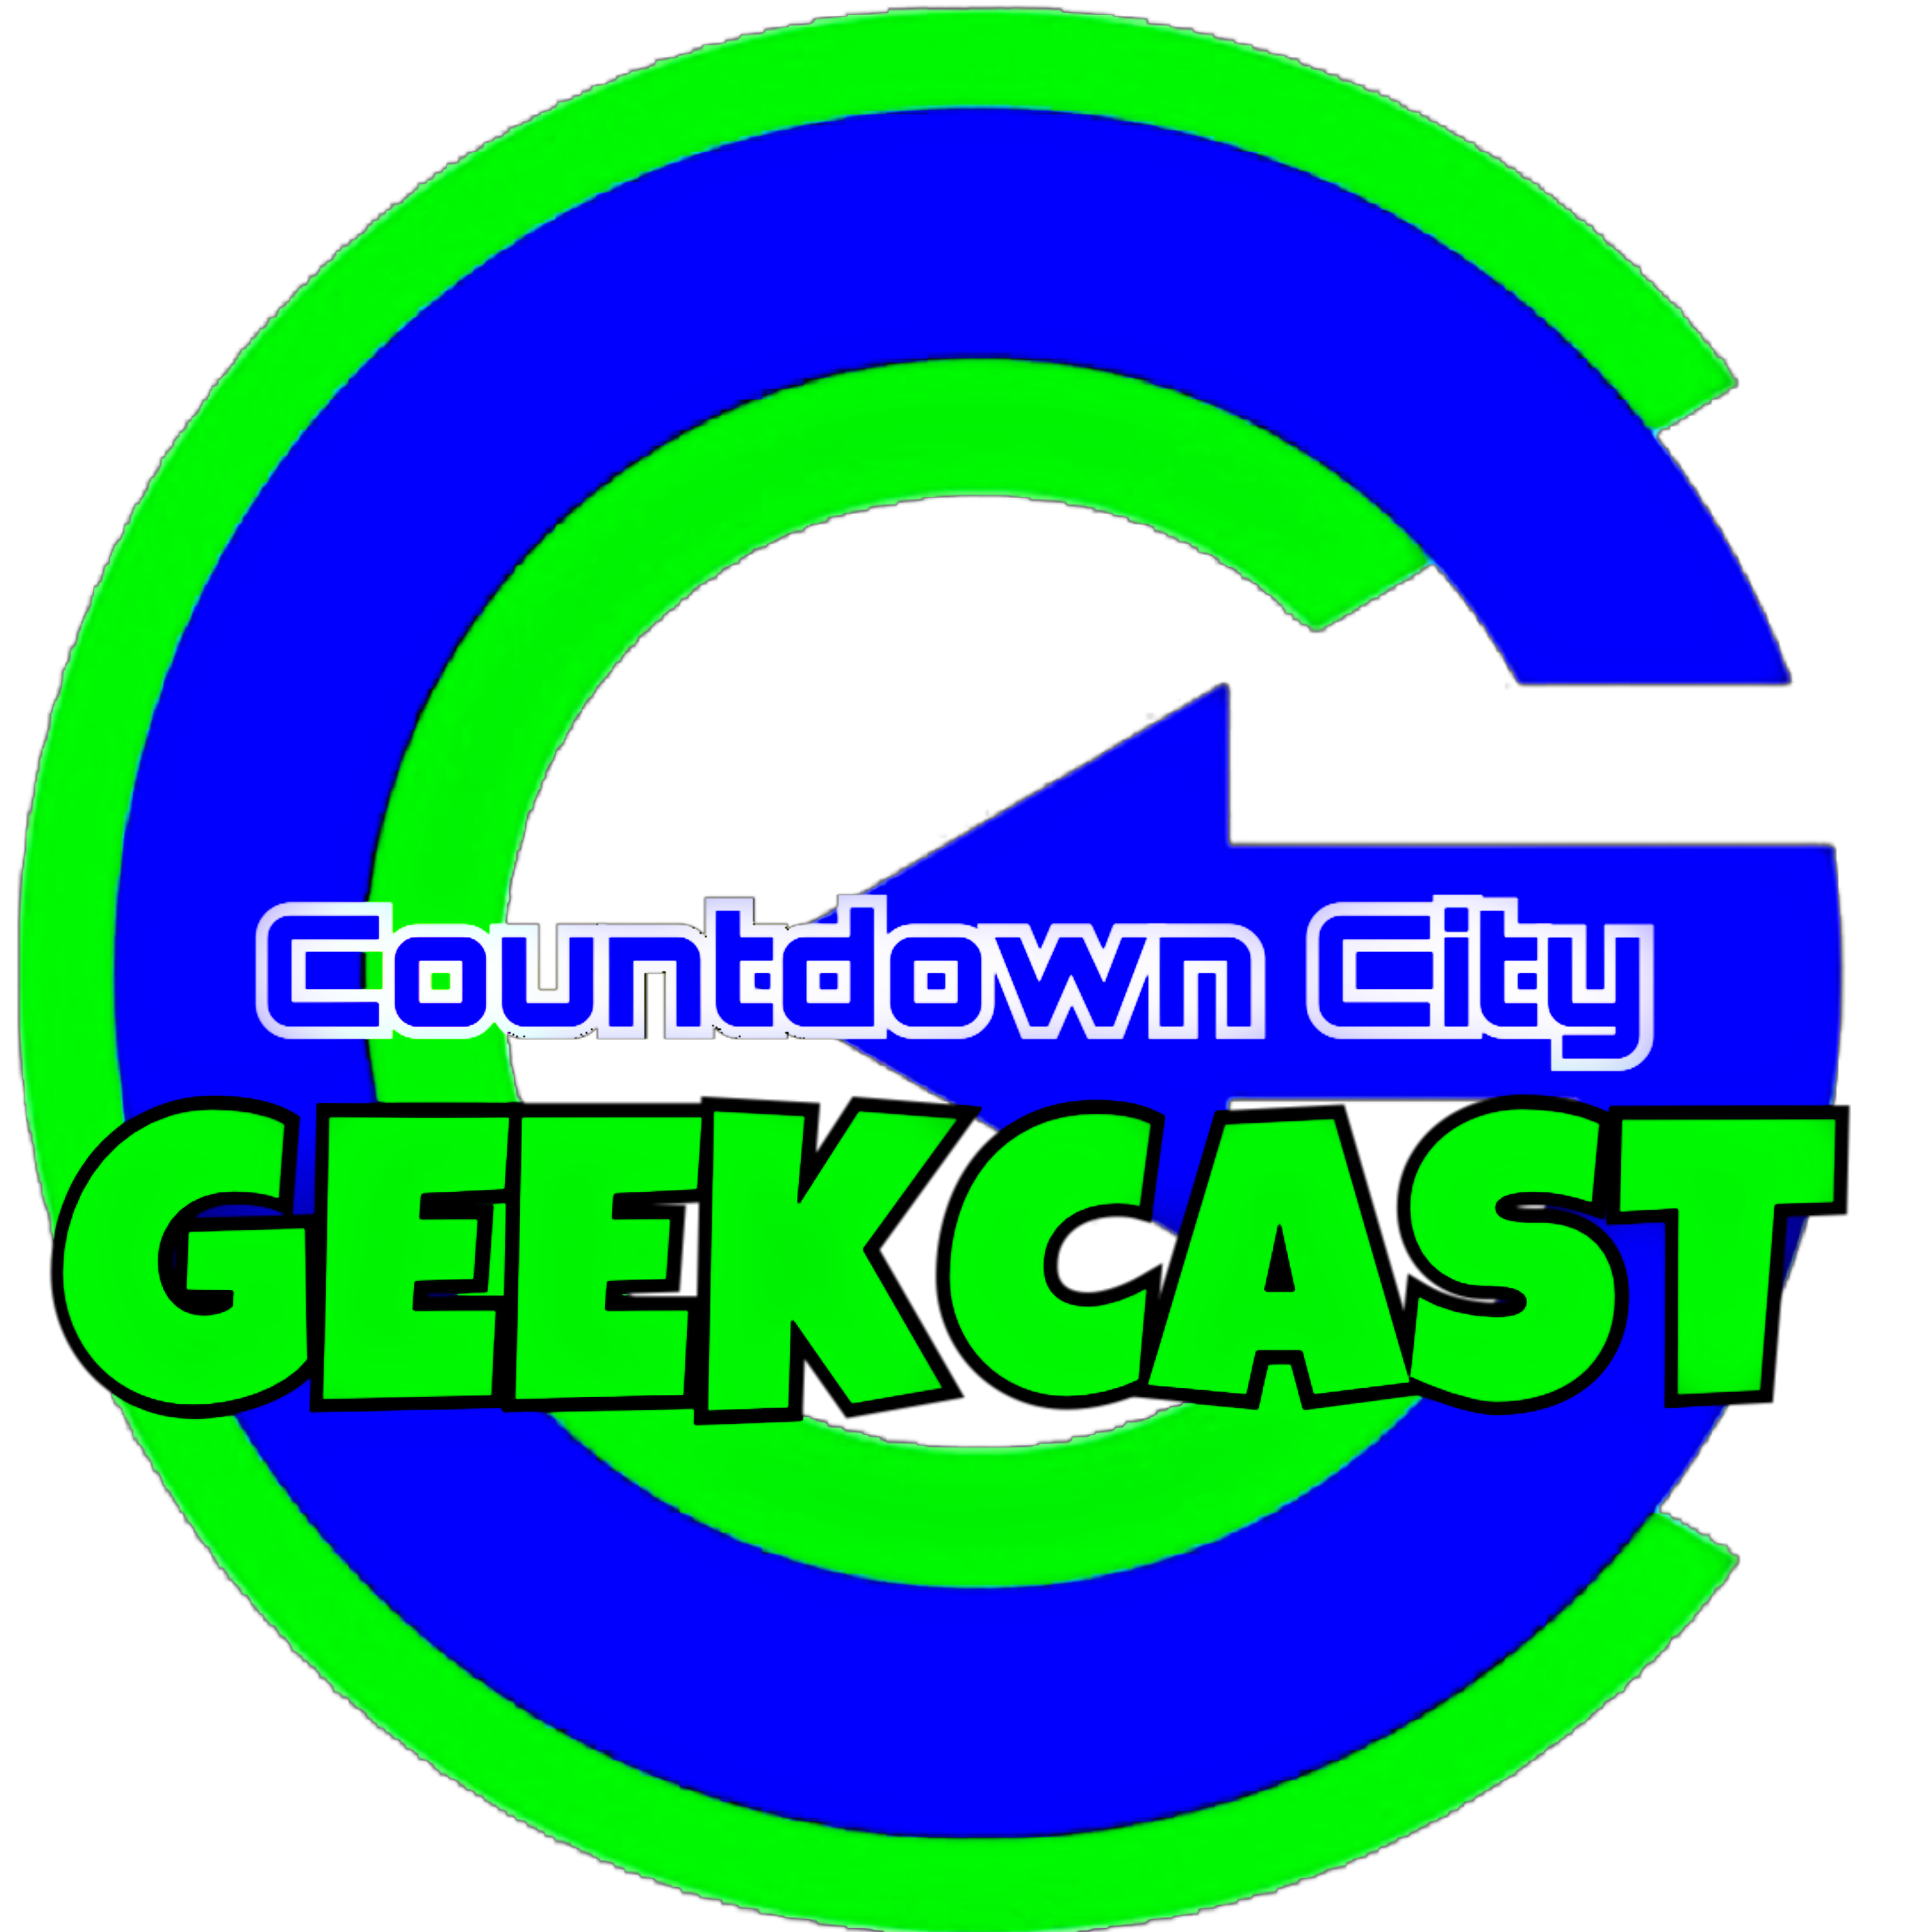 Countdown City Geekcast show art